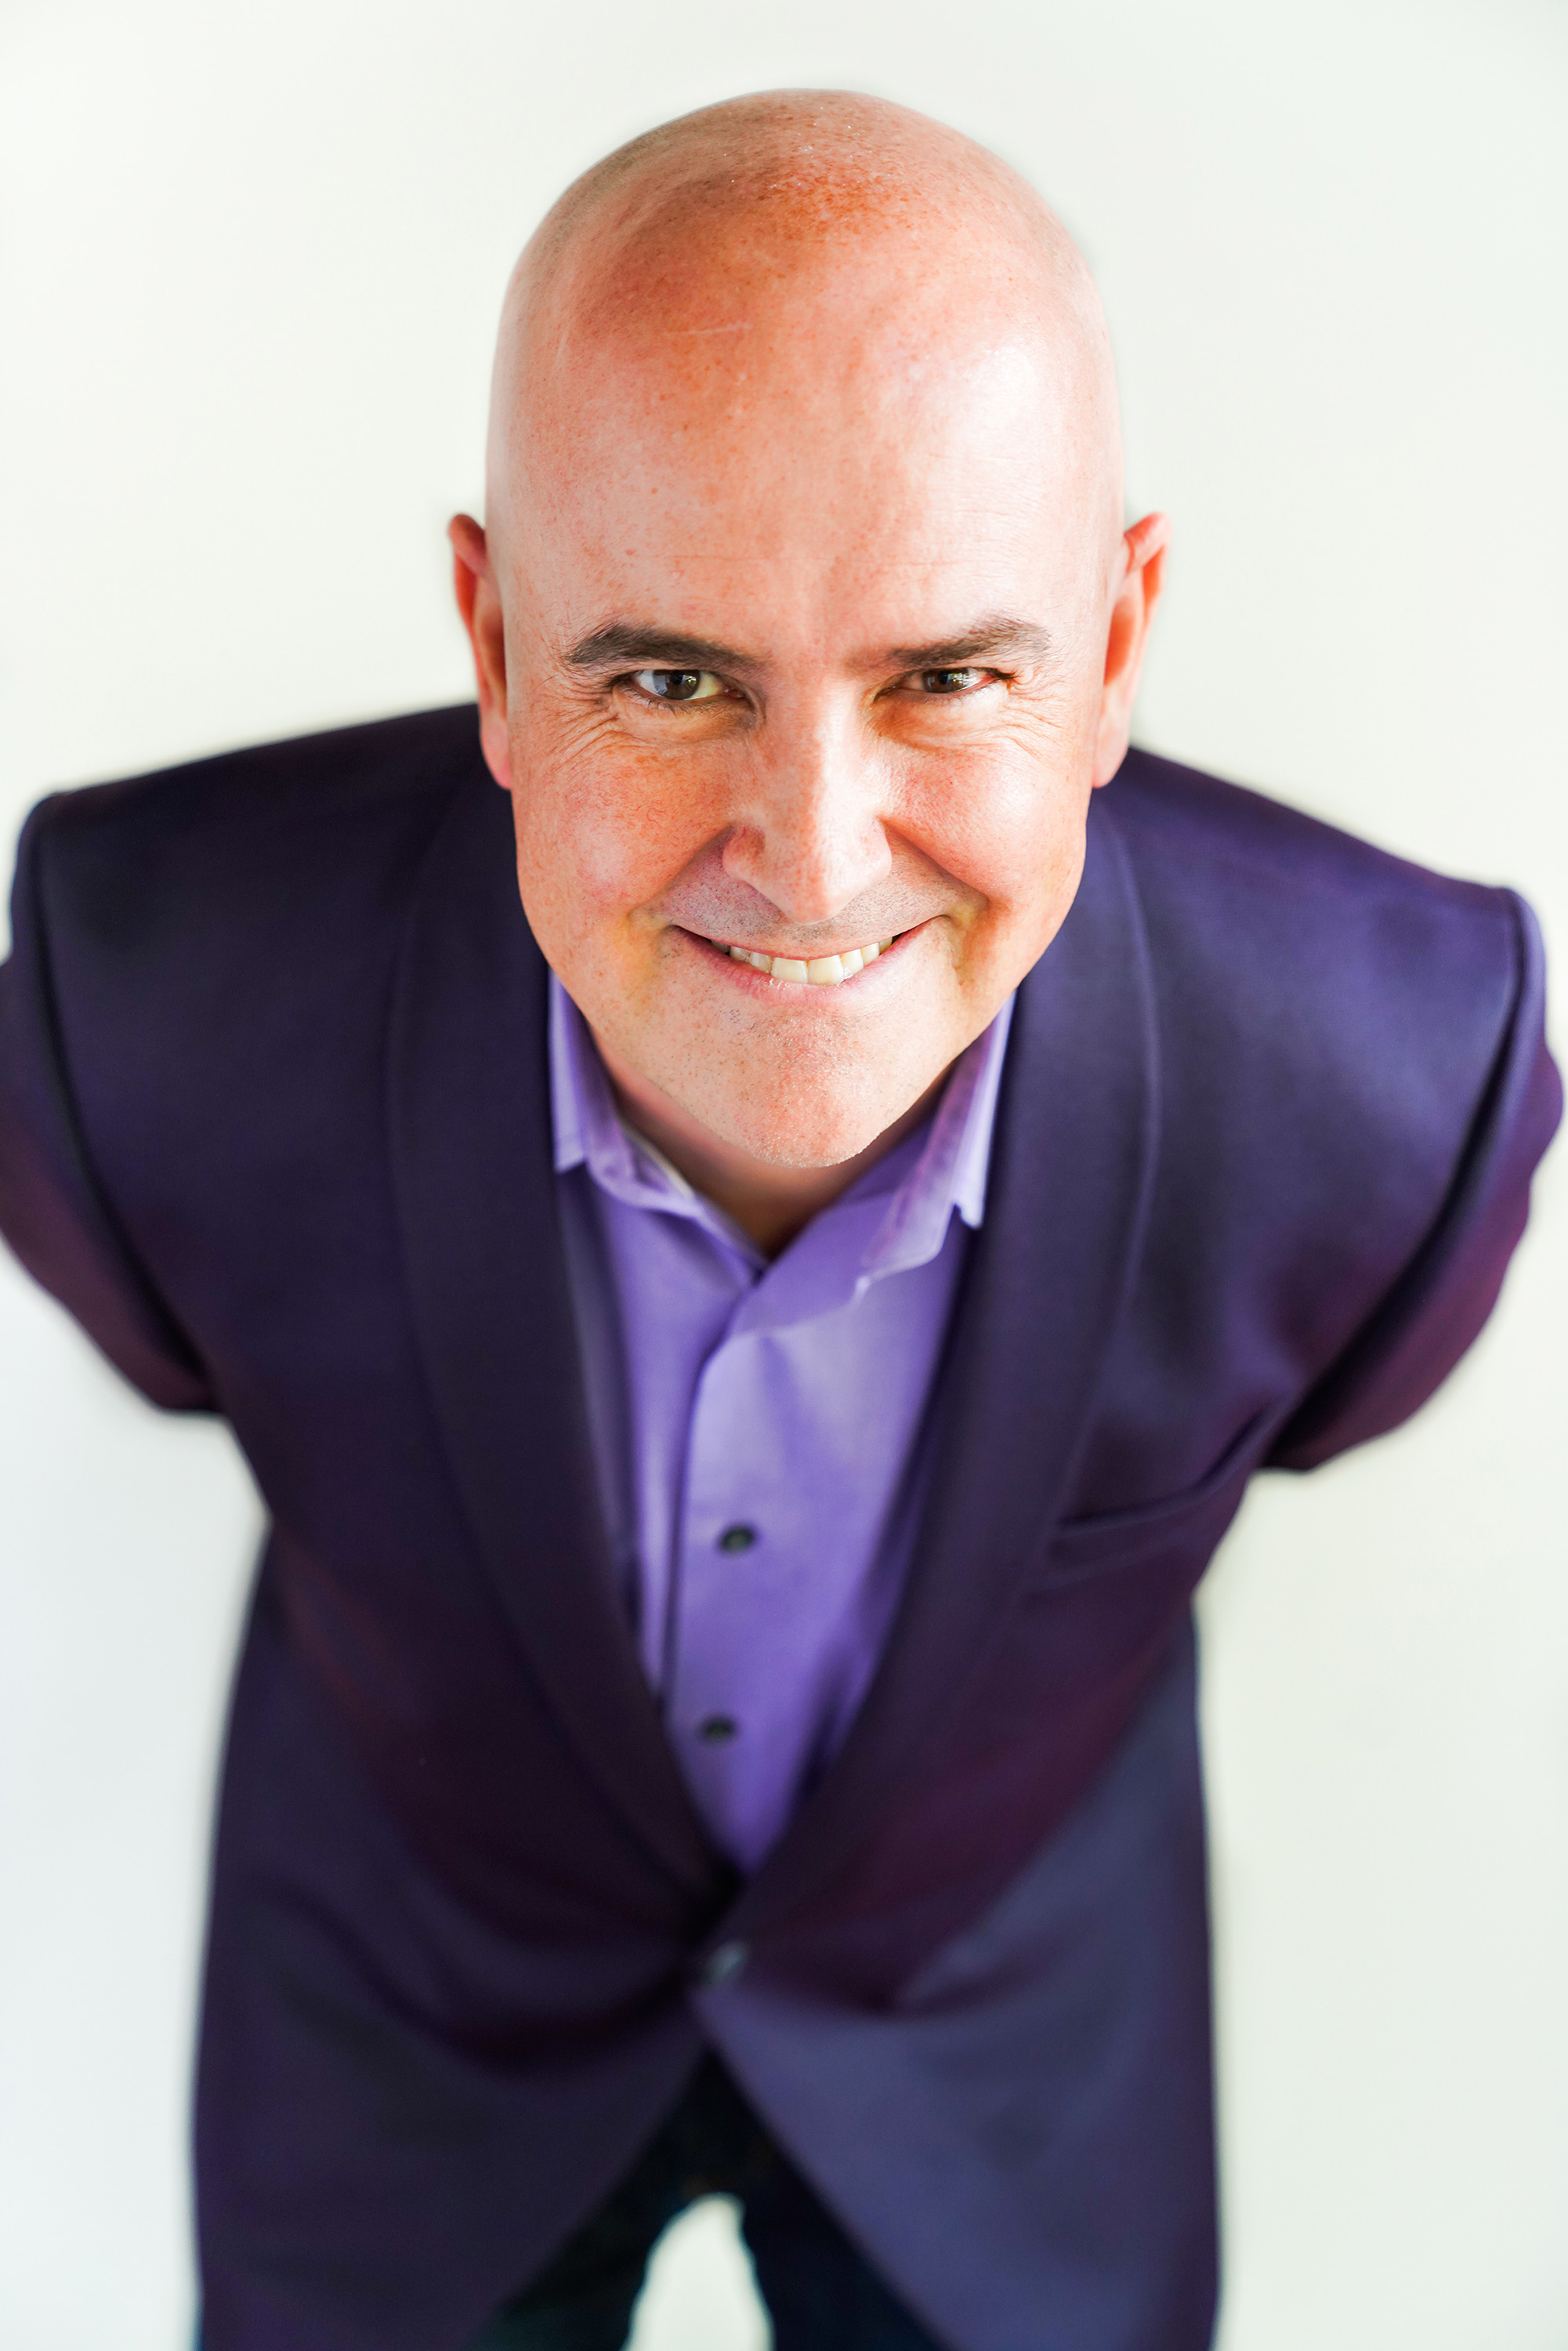 Steve Brown, Futurist, Keynote Speaker, Author and Business Strategist